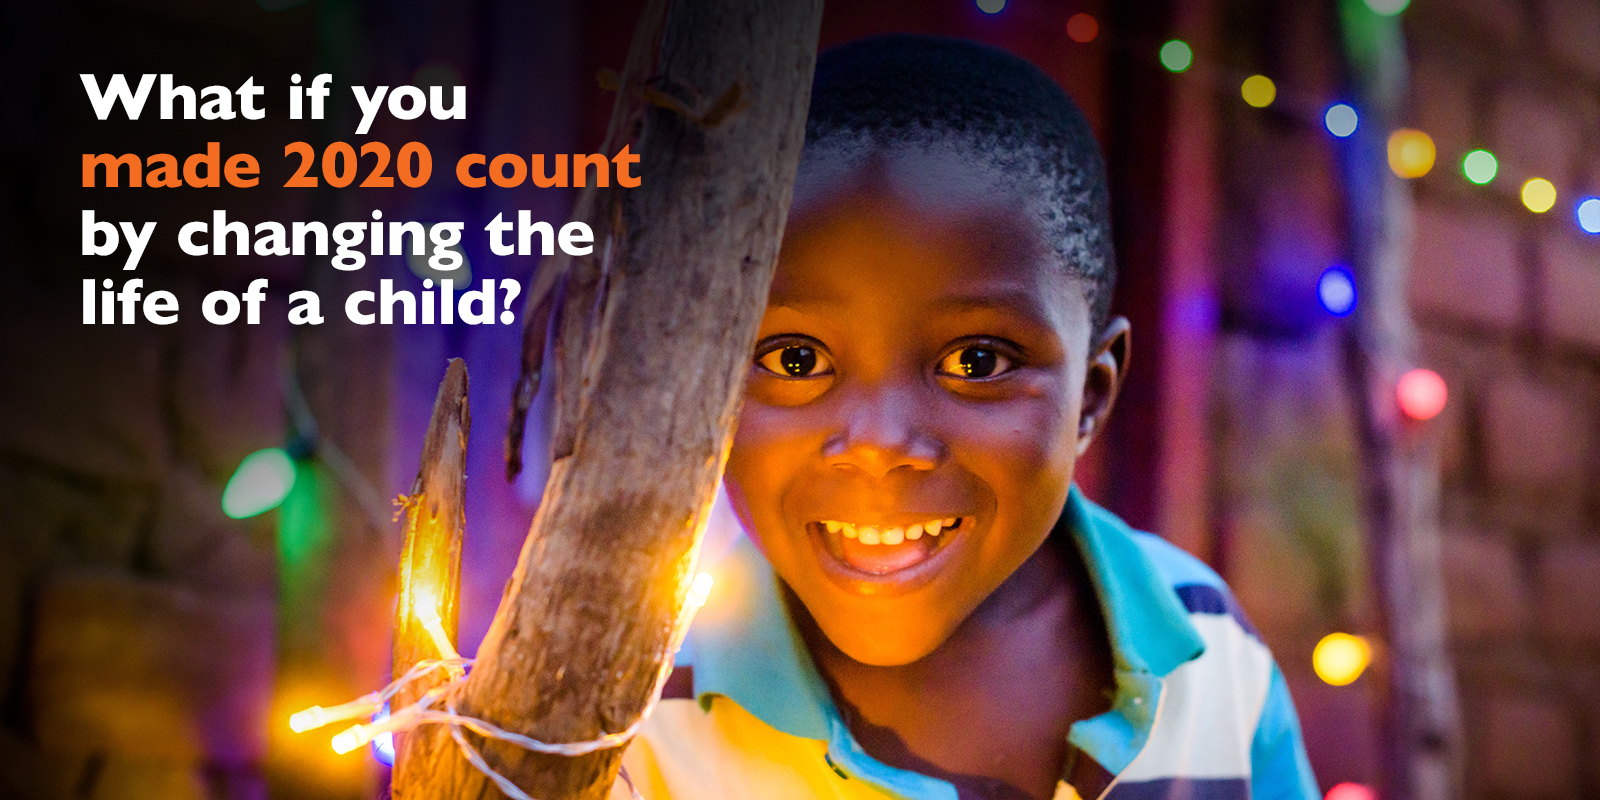 Make 2020 count when you sponsor a child this Christmas with World Vision